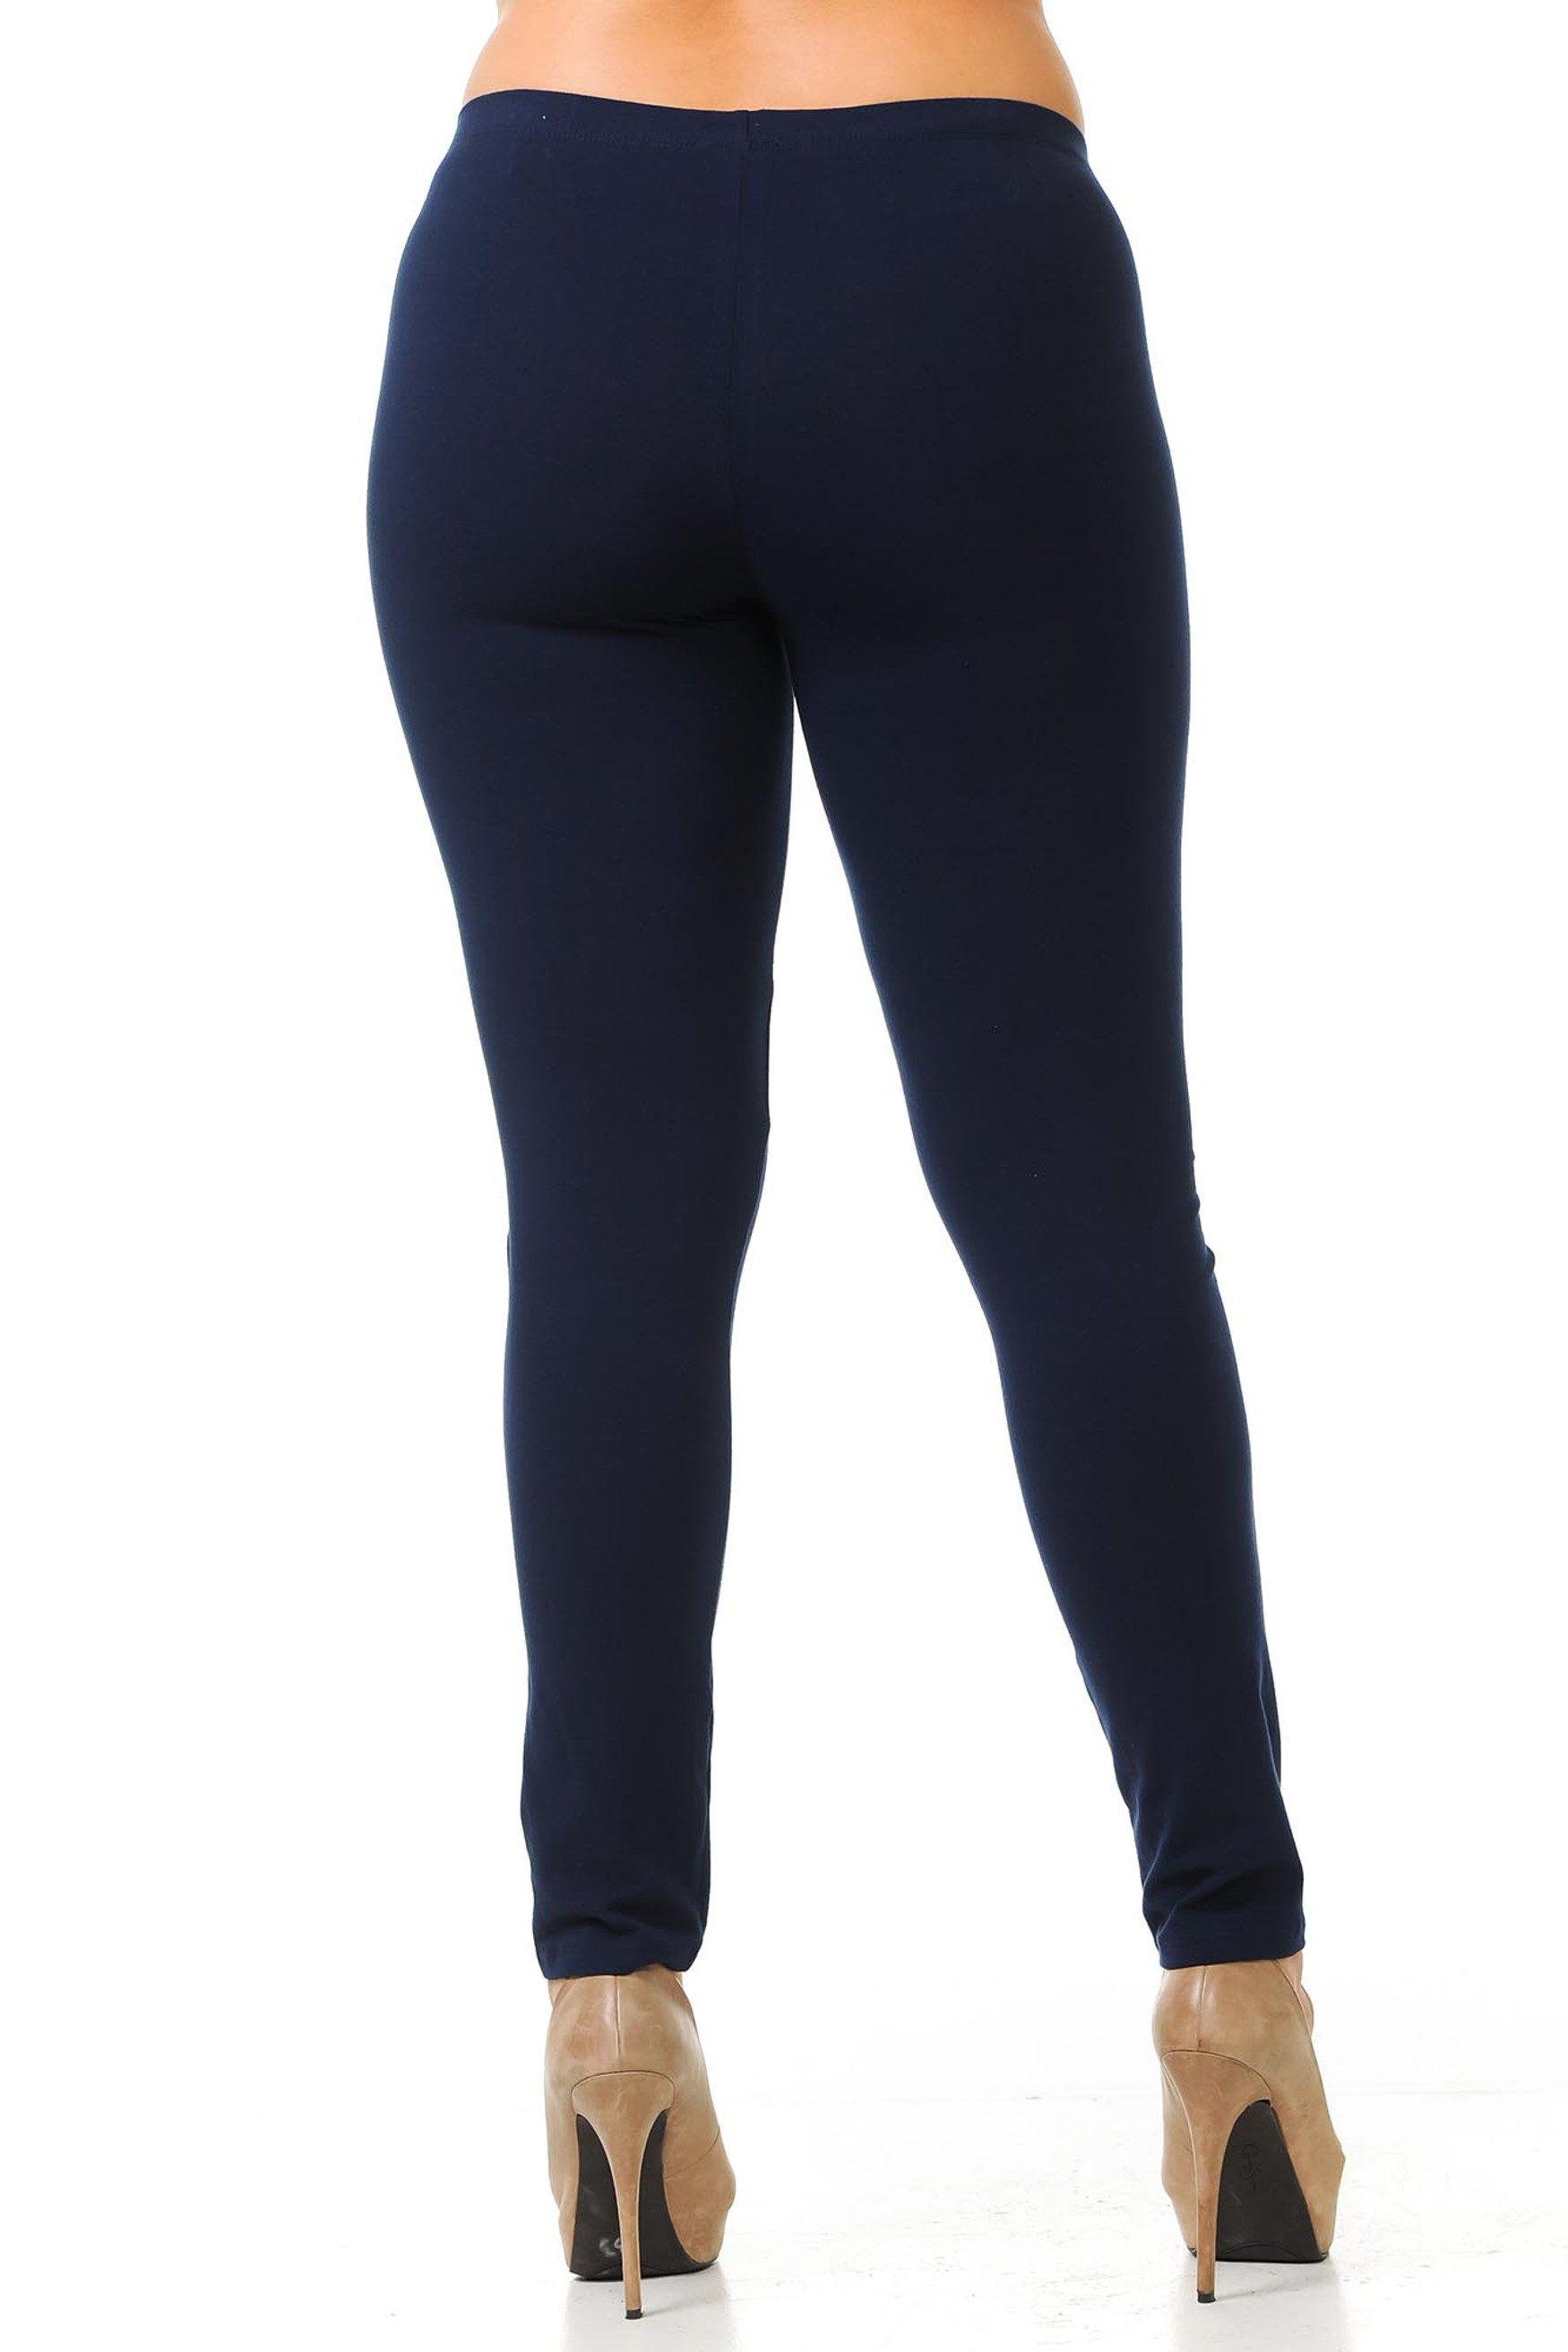 Rear view image of Navy USA Cotton Full Length Leggings - Plus Size